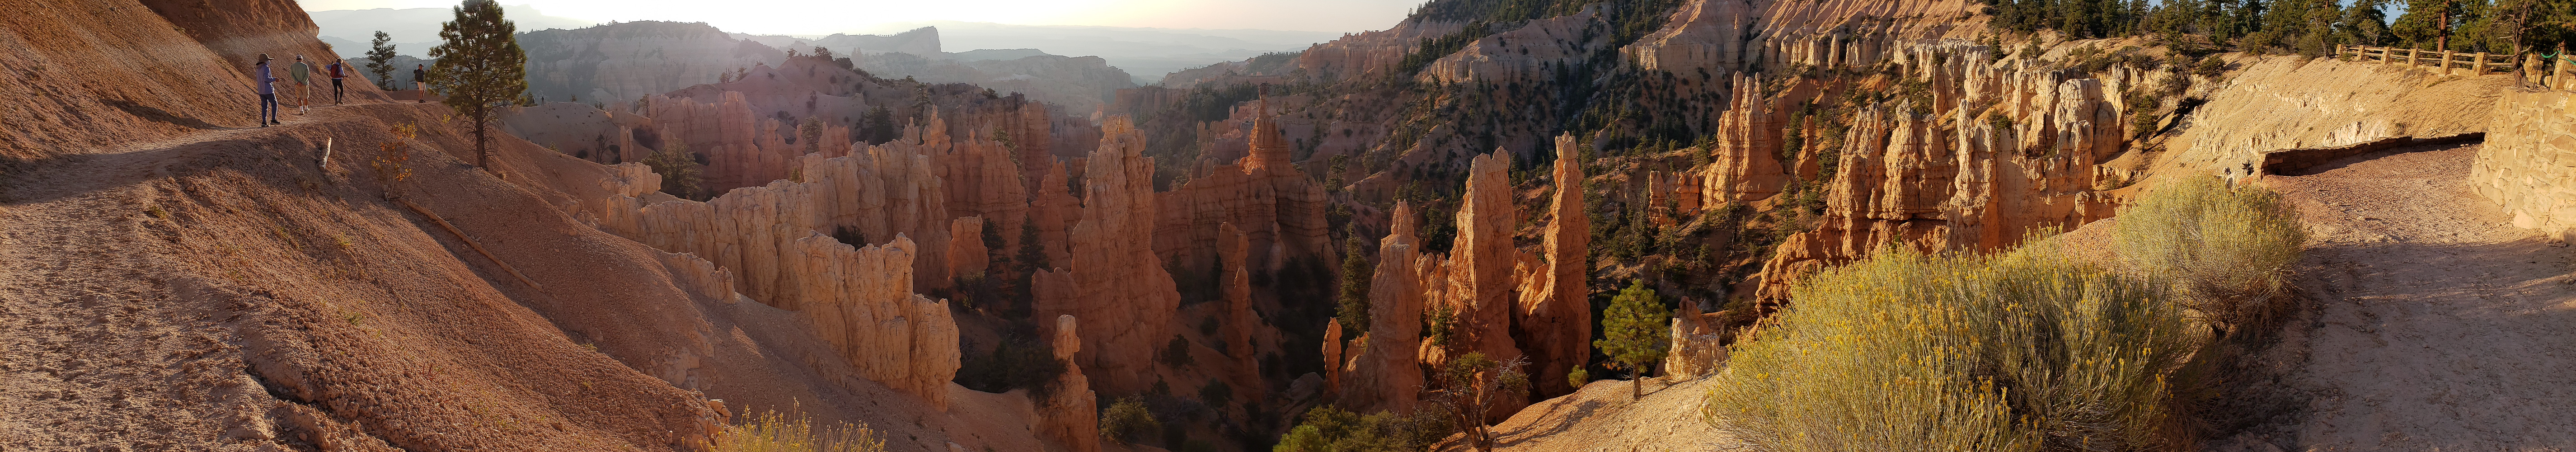 Bryce Canyon Recreation Area